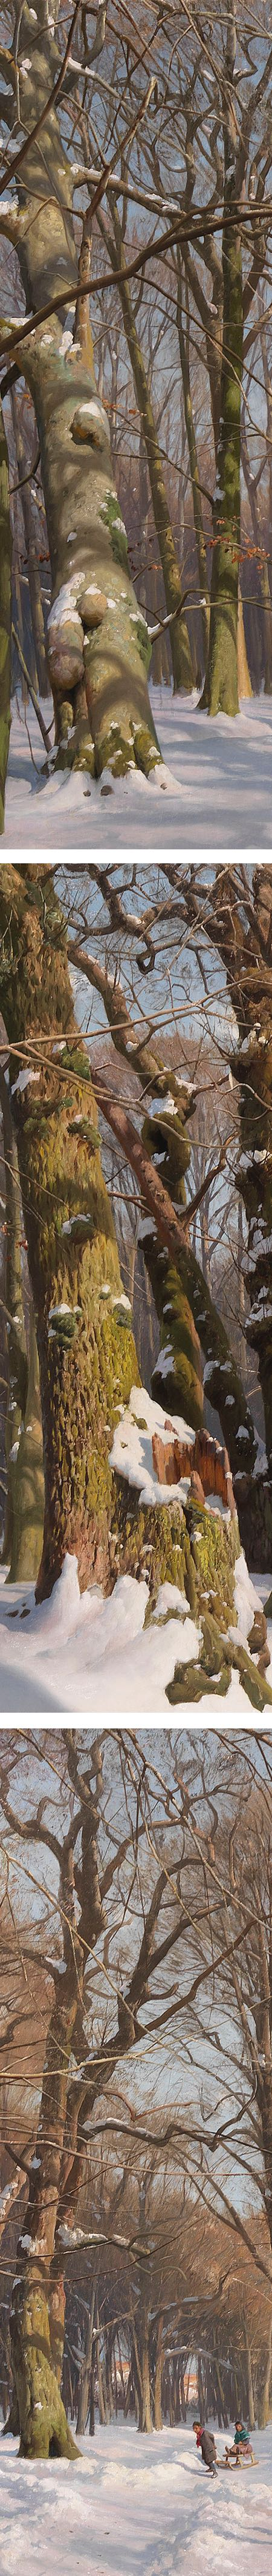 Snowy Forest Road in Sunlight, Peder Mork Monsted, details